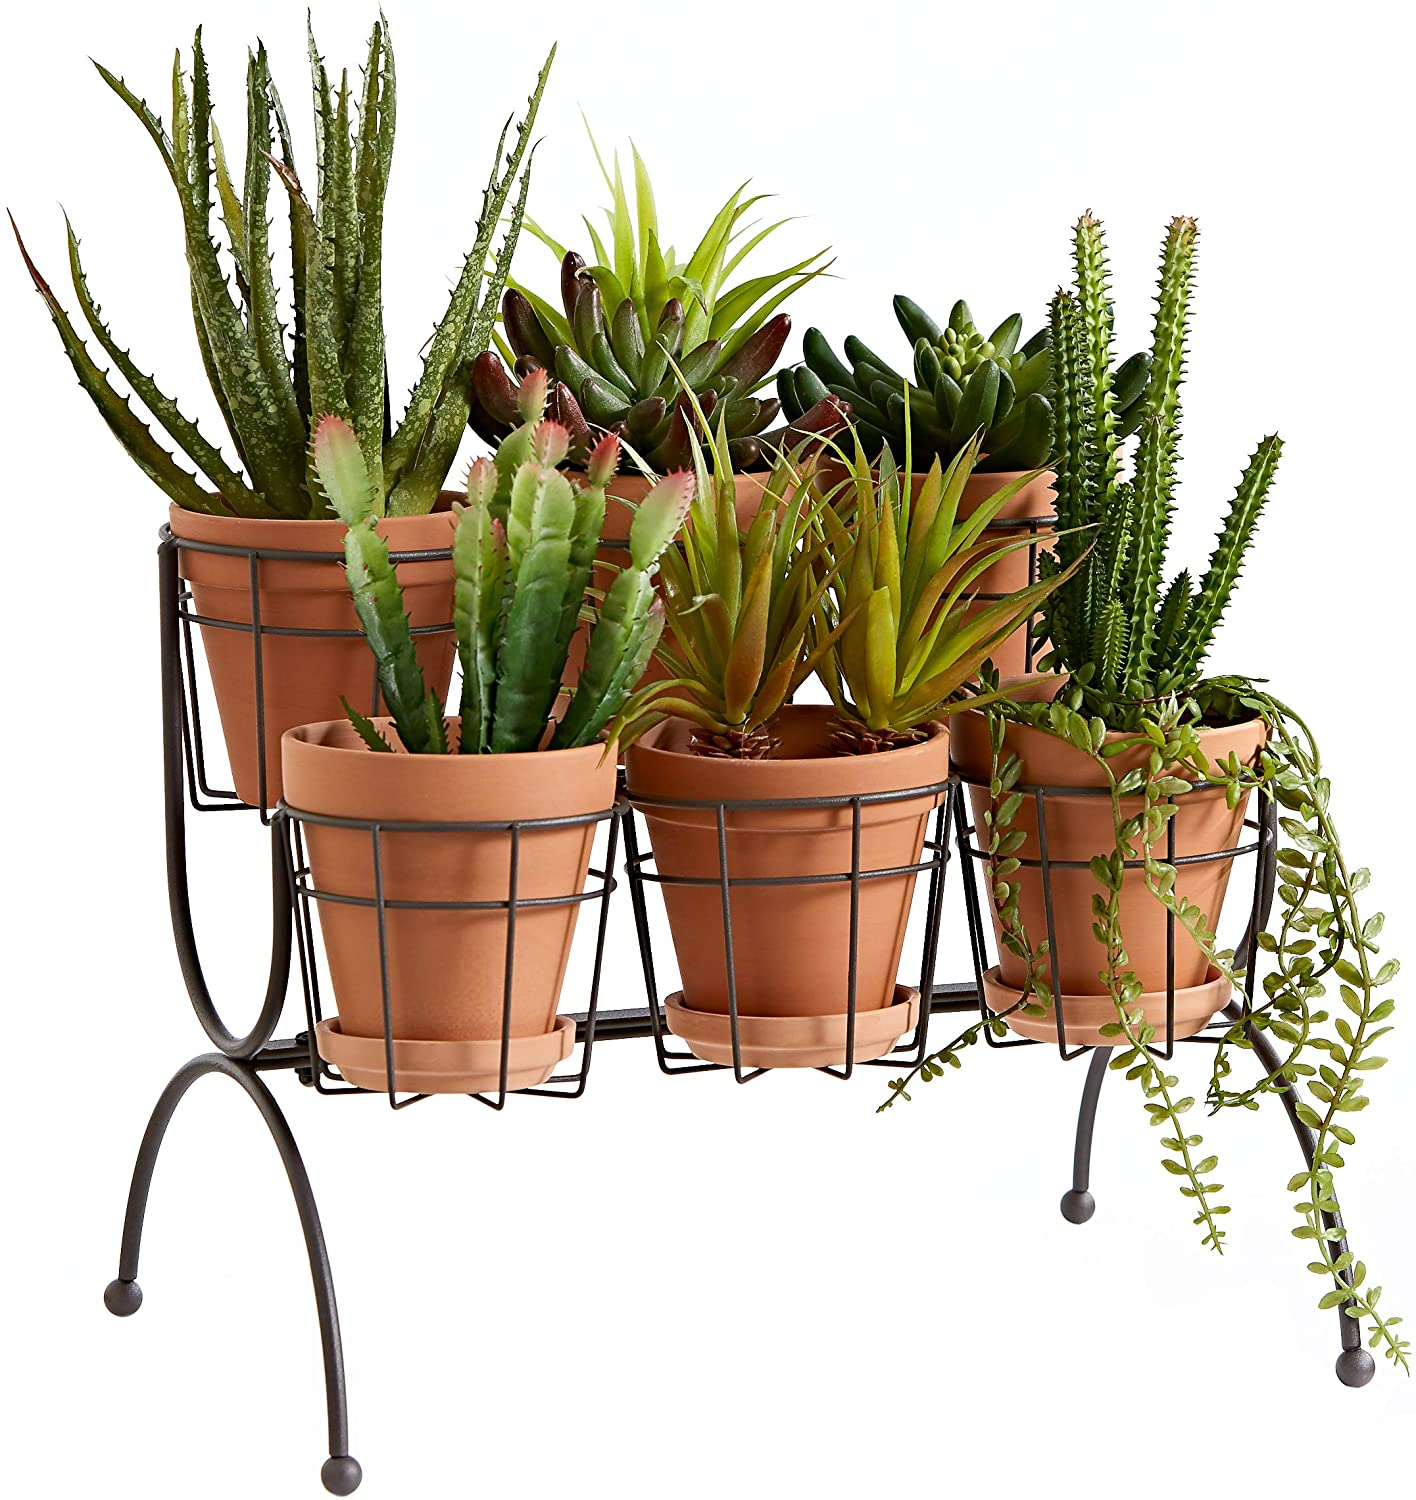 6 pot plant stand